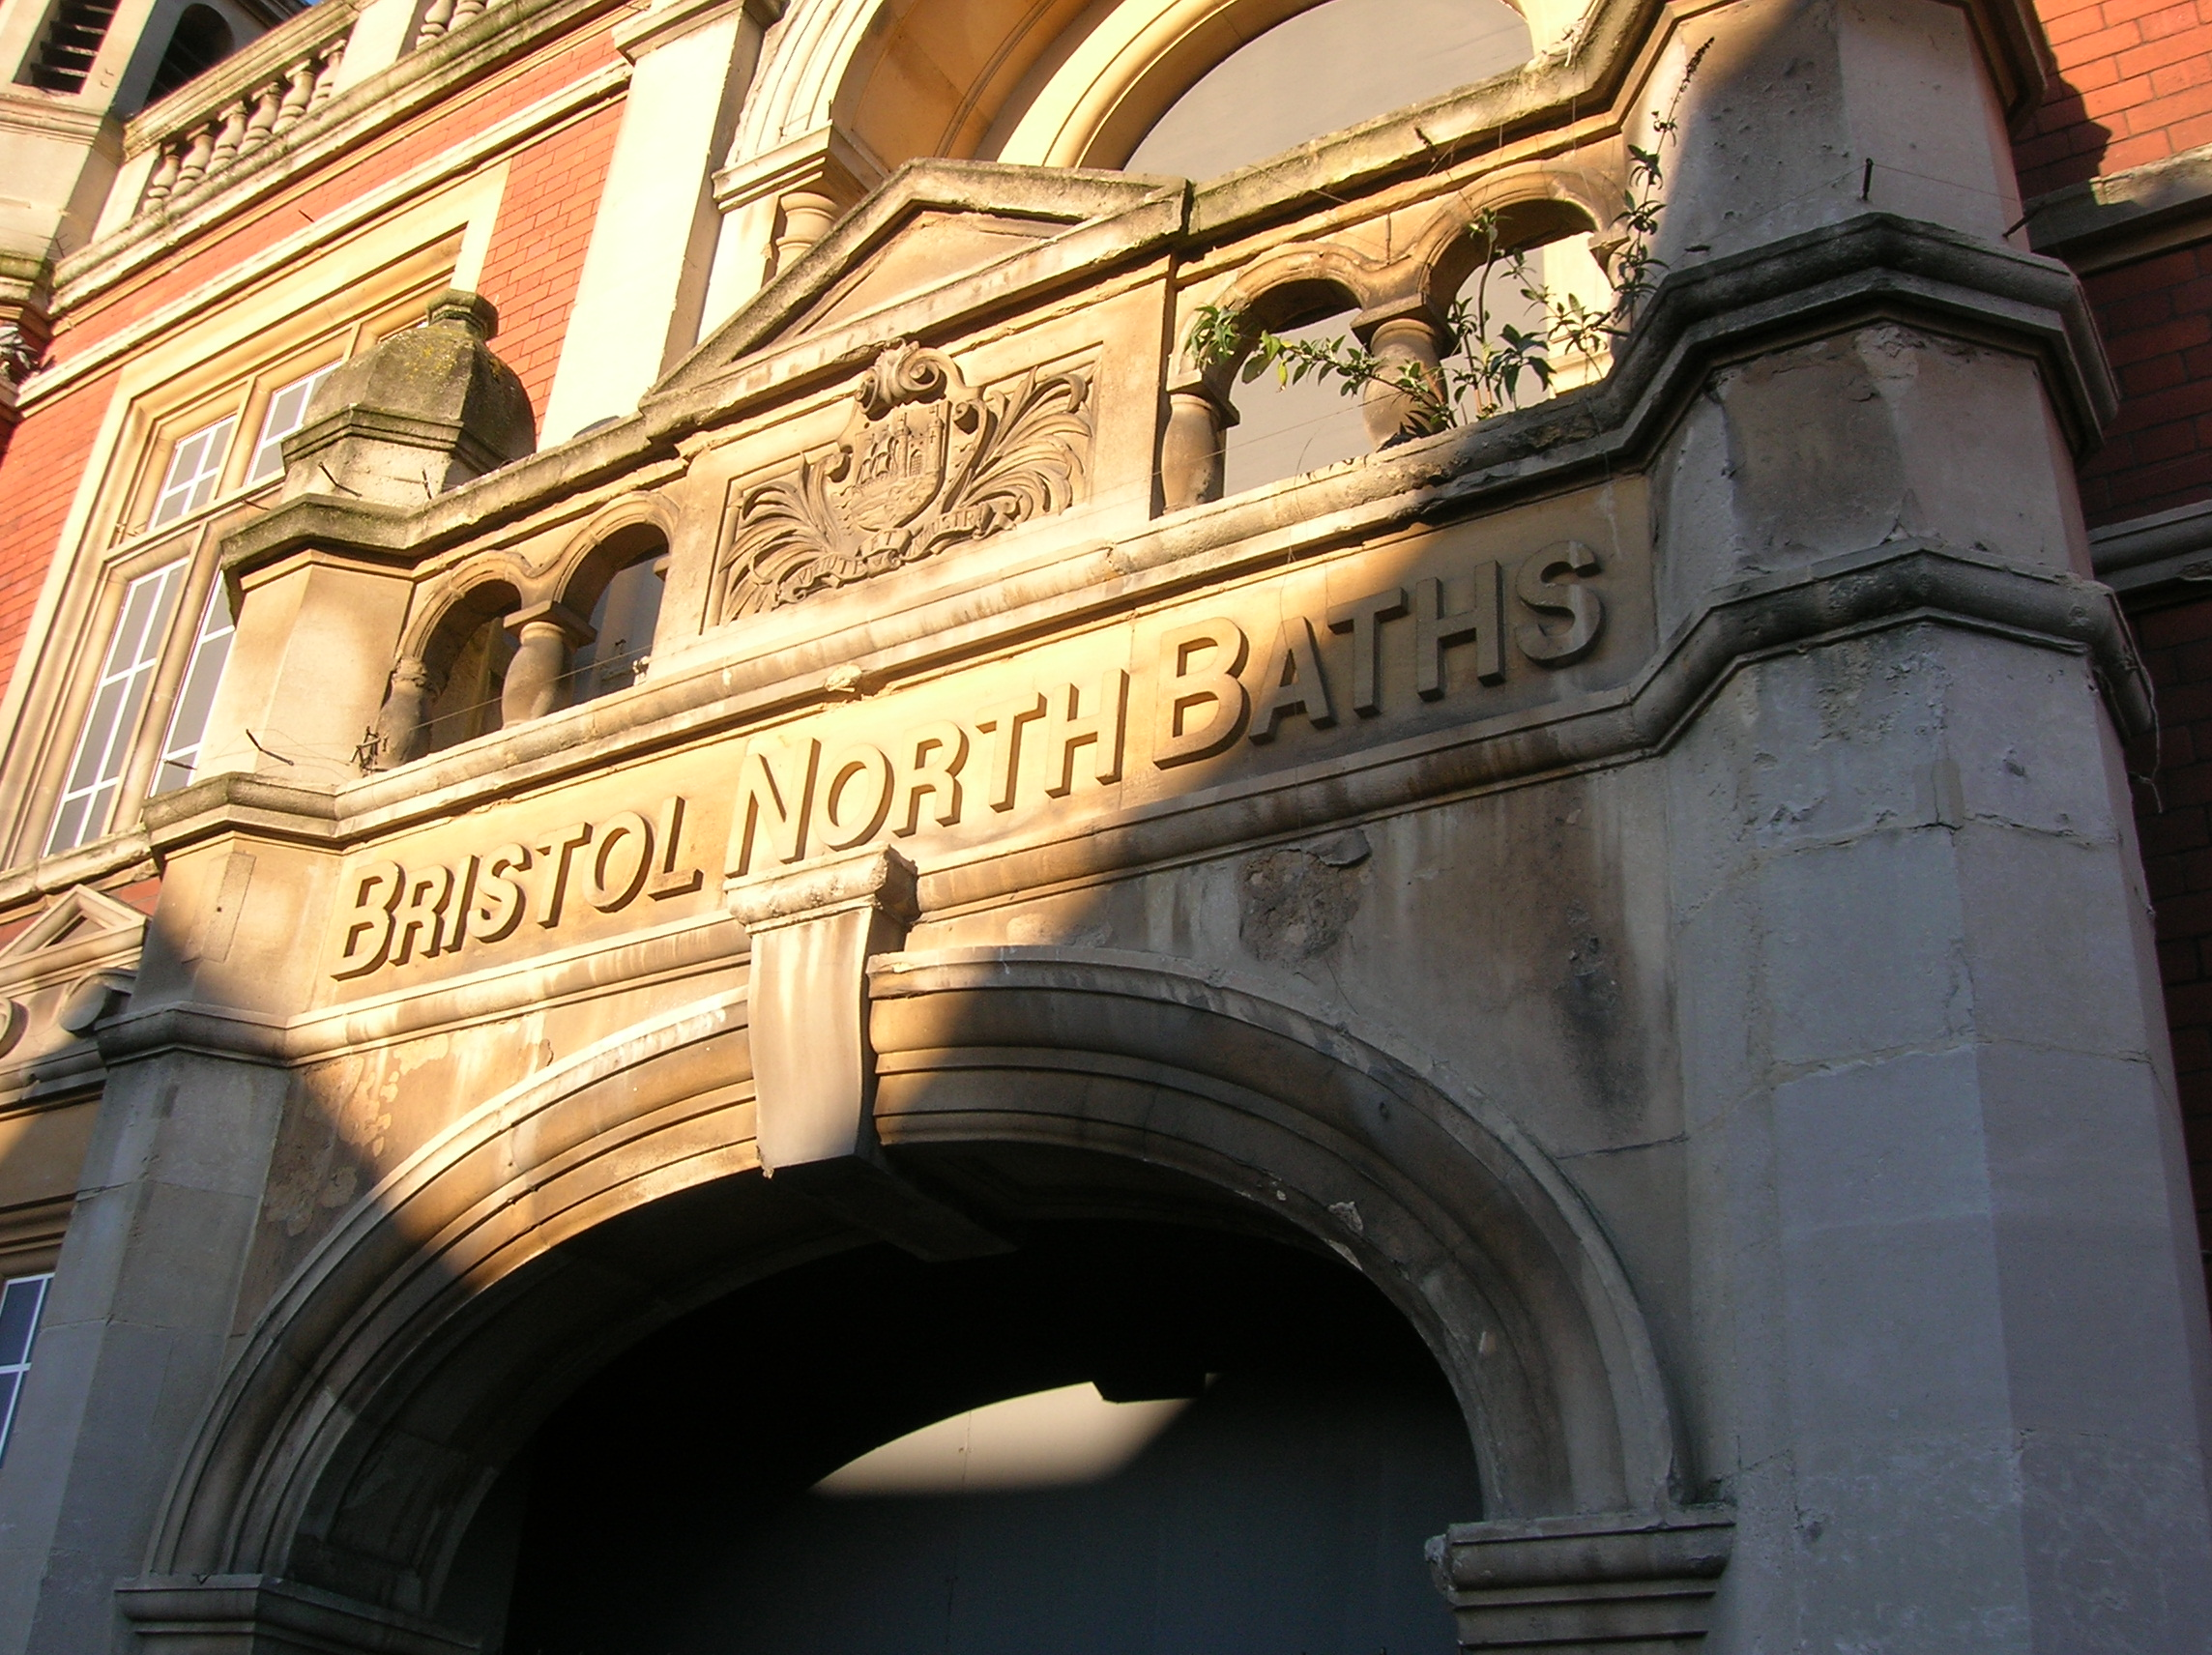 The Bristol North Baths